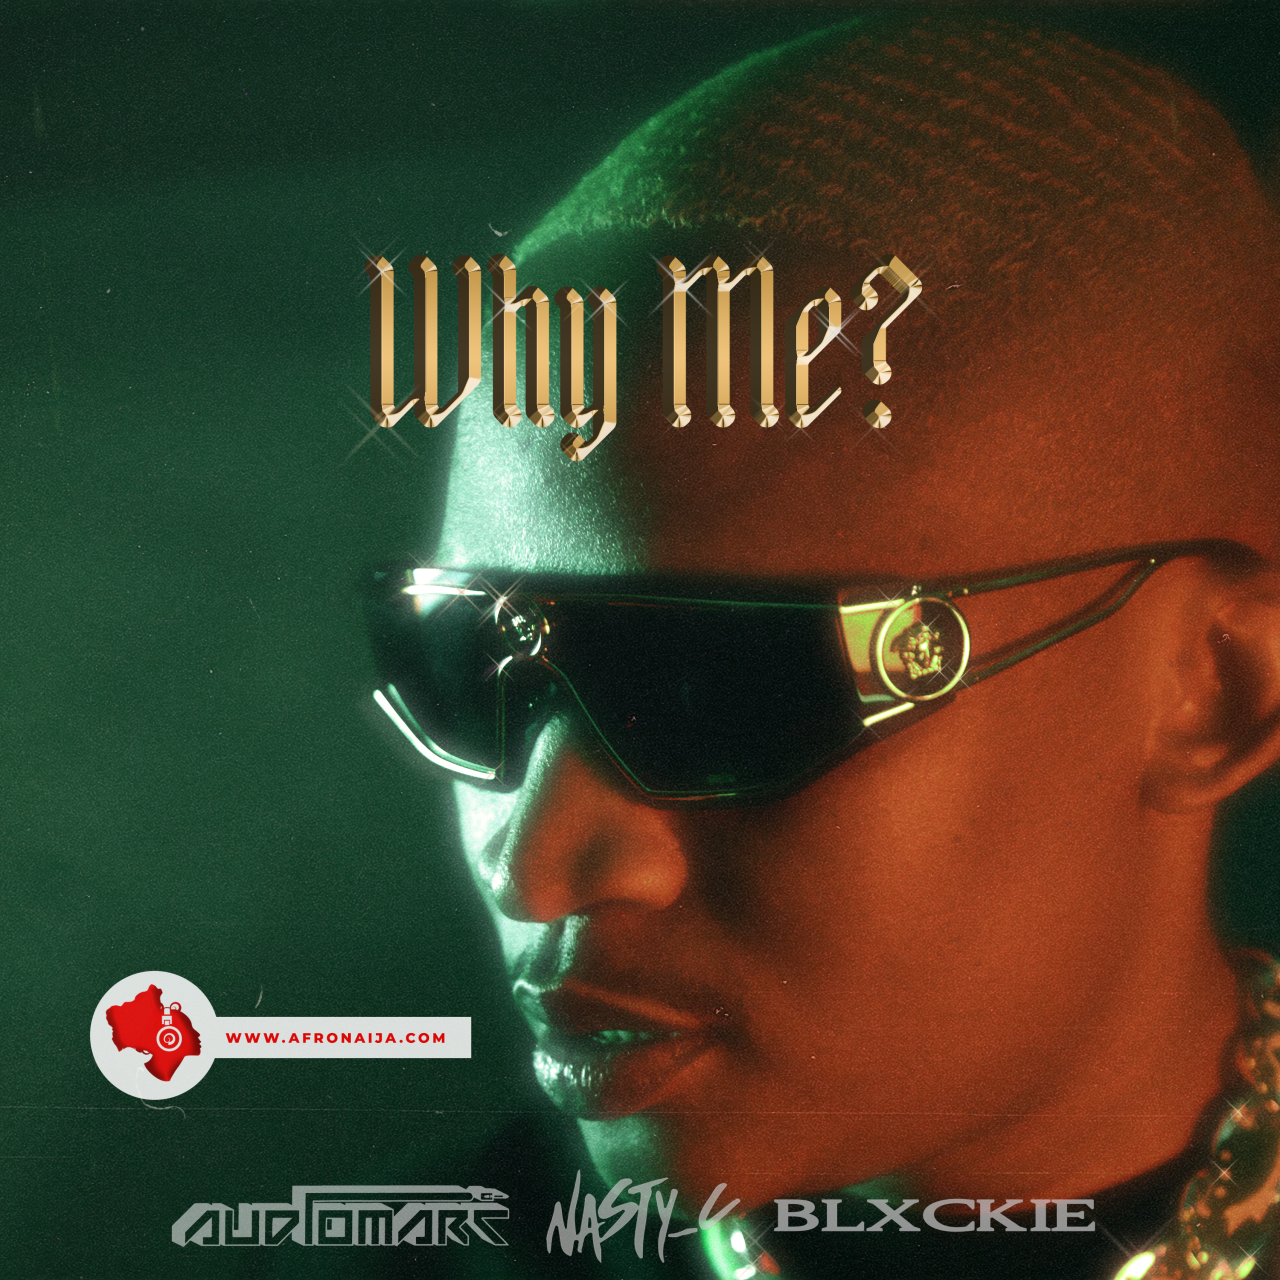 Audiomarc Ft. Nasty C and Blxckie - Why Me?